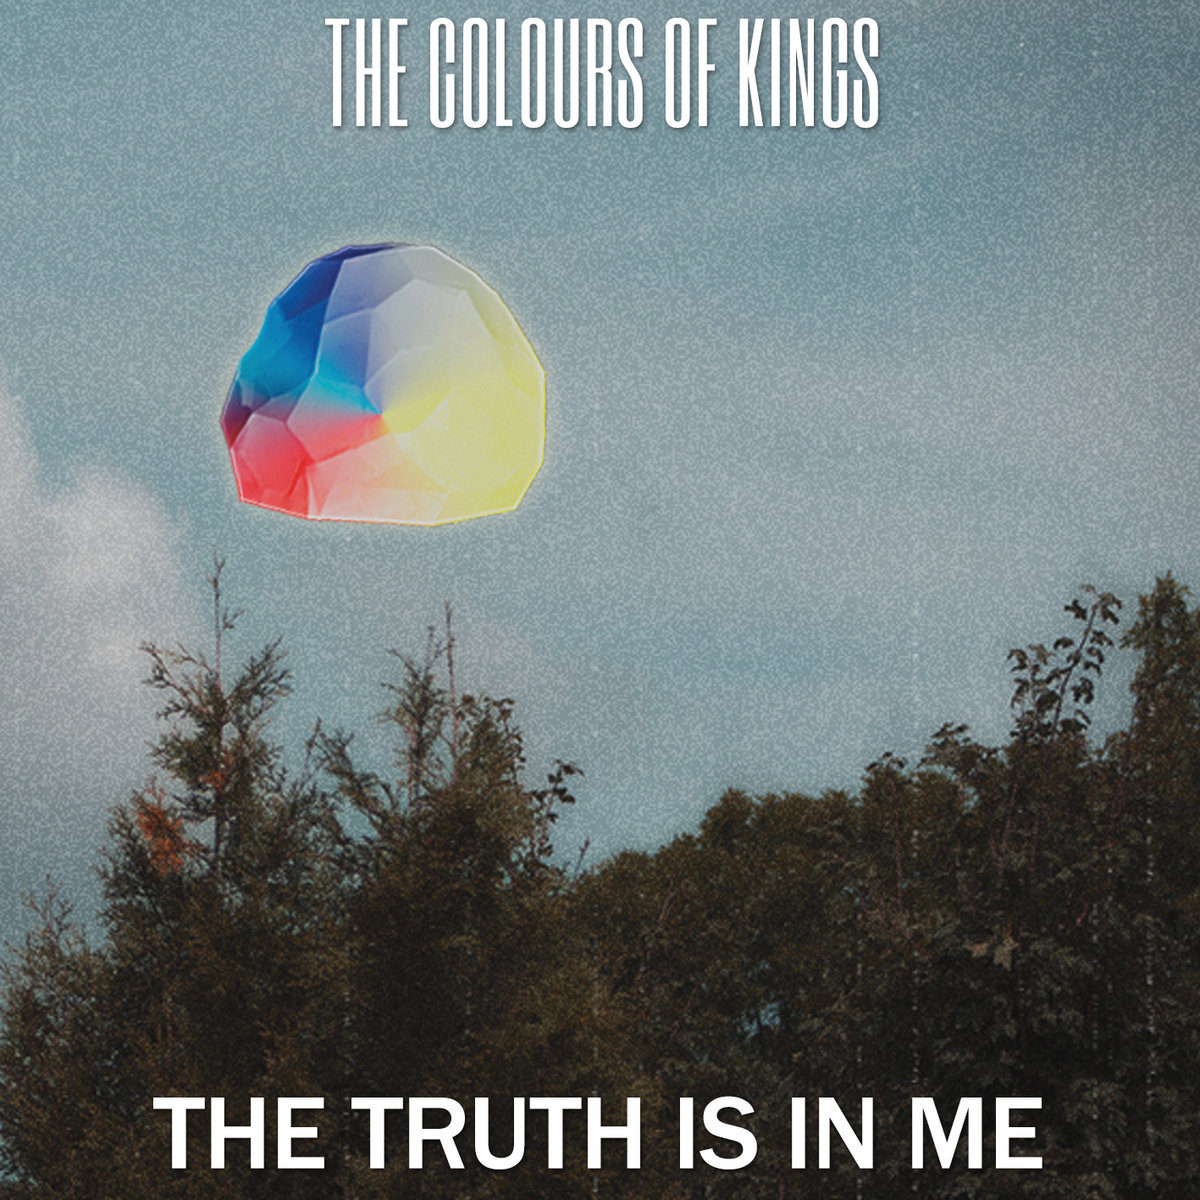 The Colours of Kings – The Truth is in Me